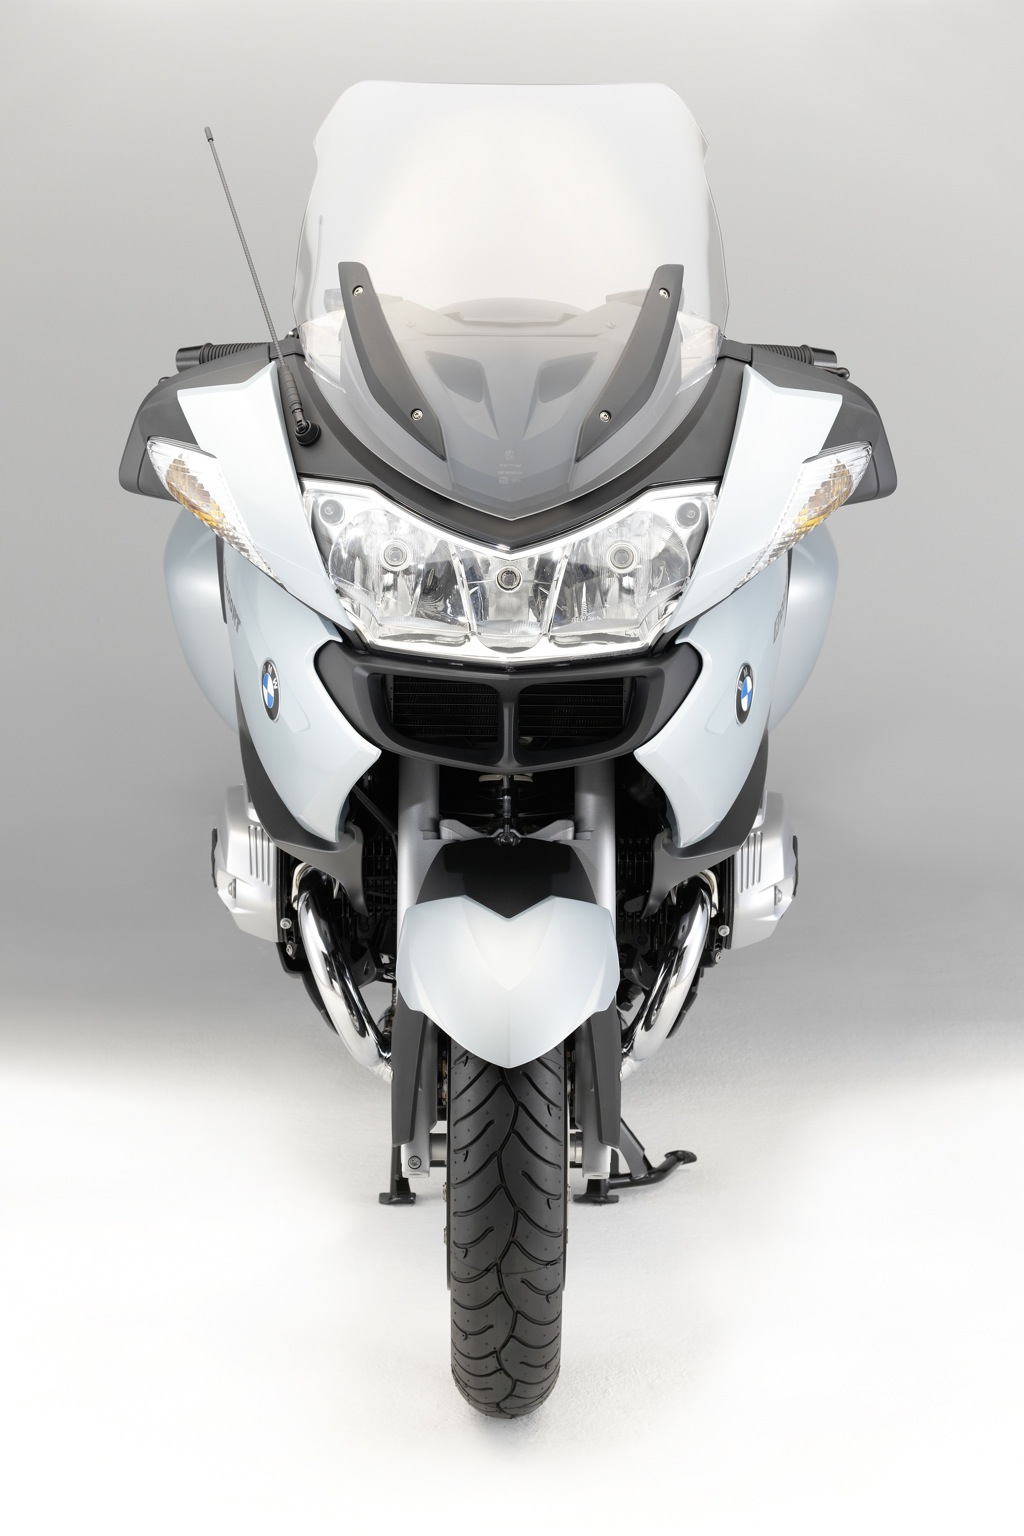 hight resolution of german motorcycle manufacturer bmw had just released full details and photos on the updated versions of 2010 bmw r 1200 rt